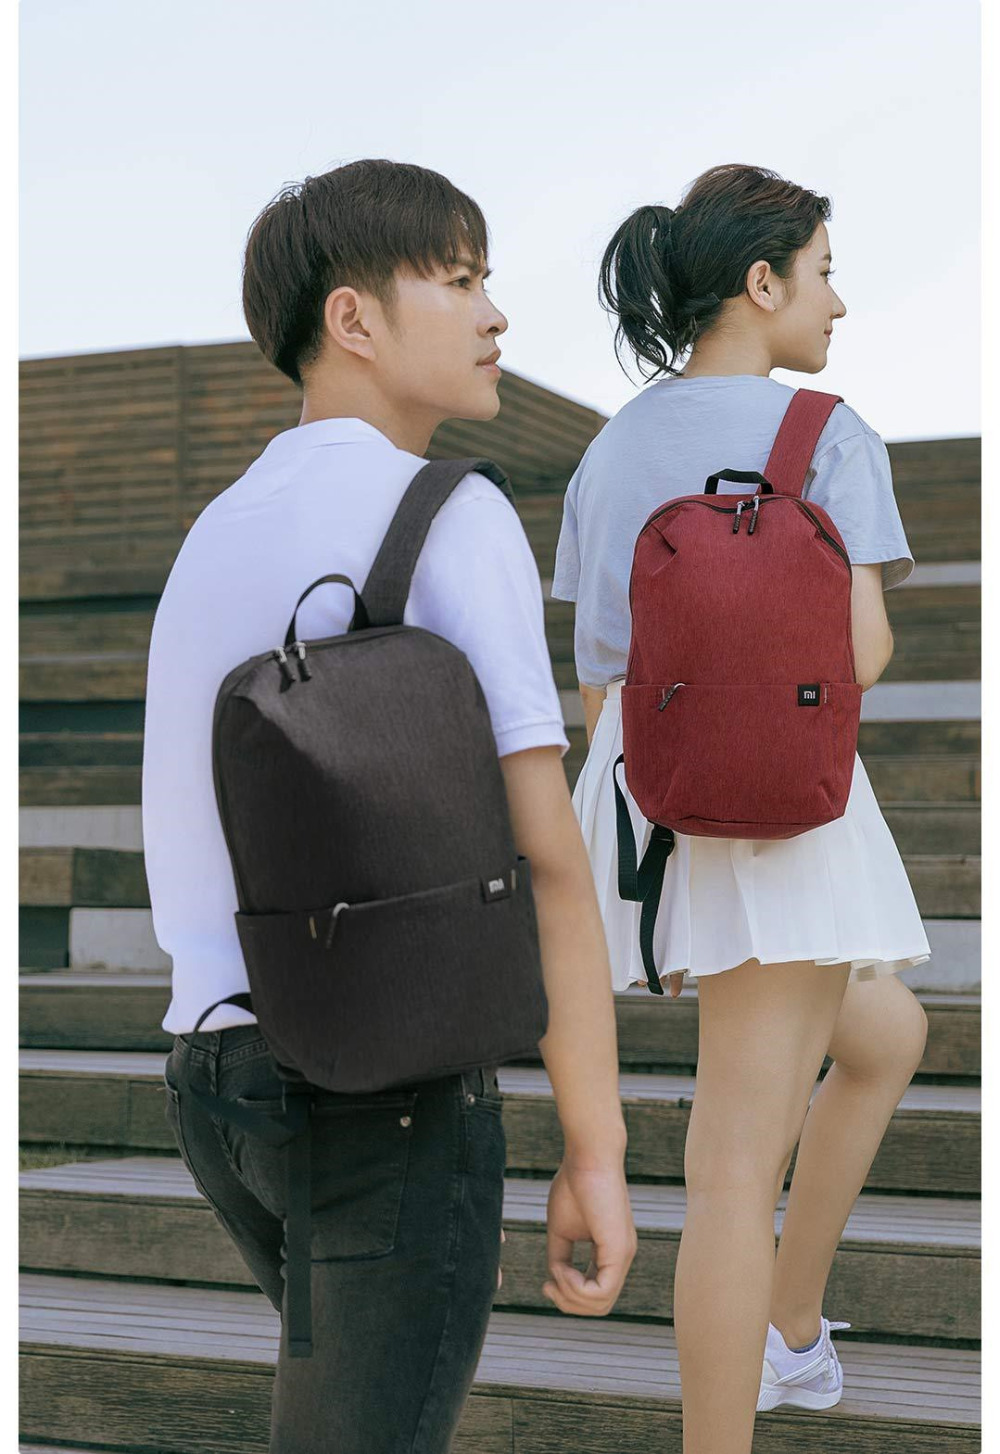 Original Xiaomi Mi Backpack 10L Bag Urban Leisure Sports Chest Pack Bags Men Women Small Size Shoulder Unisex Rucksack bolsa (13)